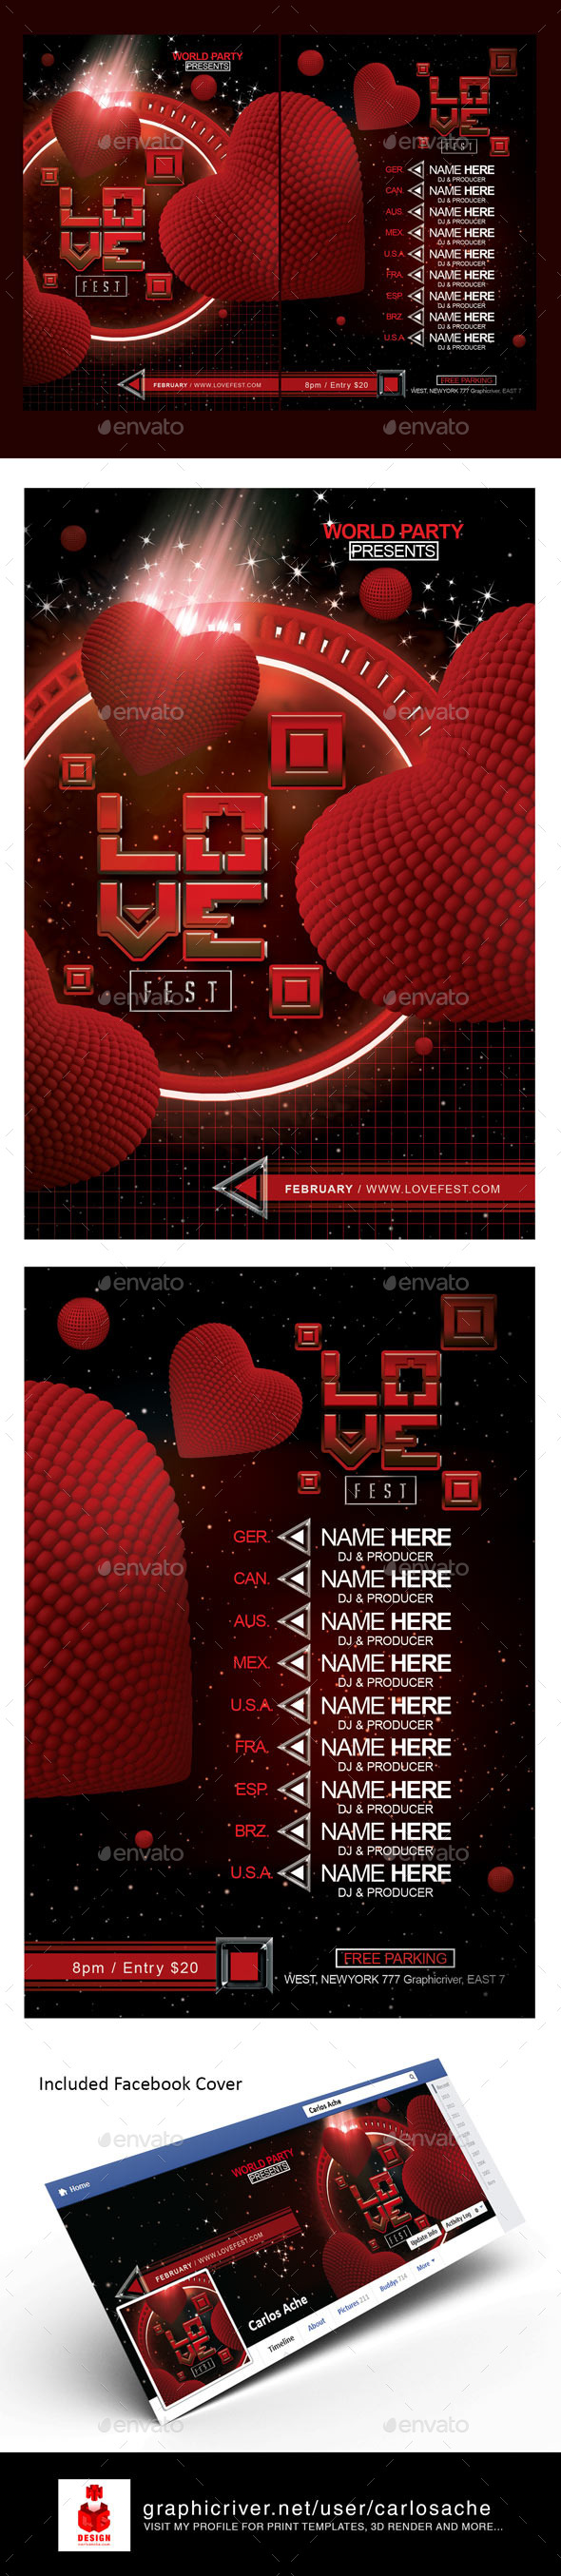 Love Fest Flyer Template - Holidays Events